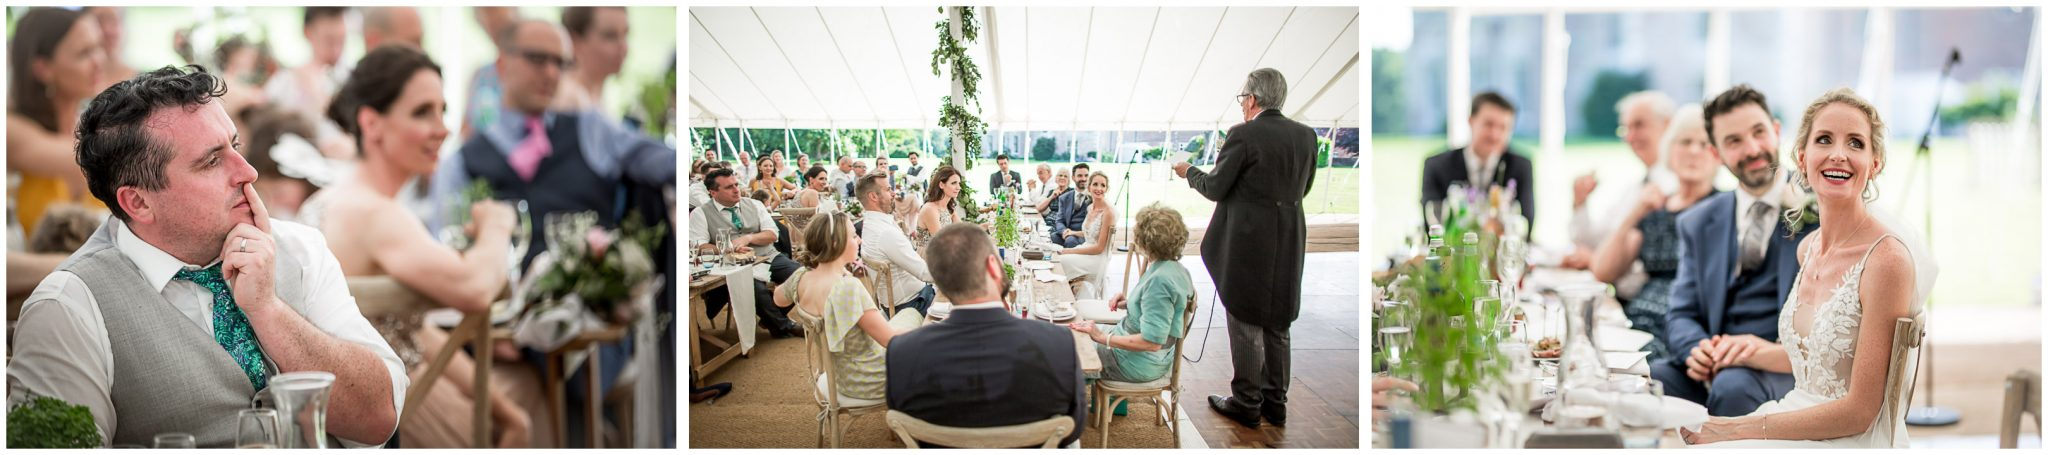 The father of the bride gives his speech